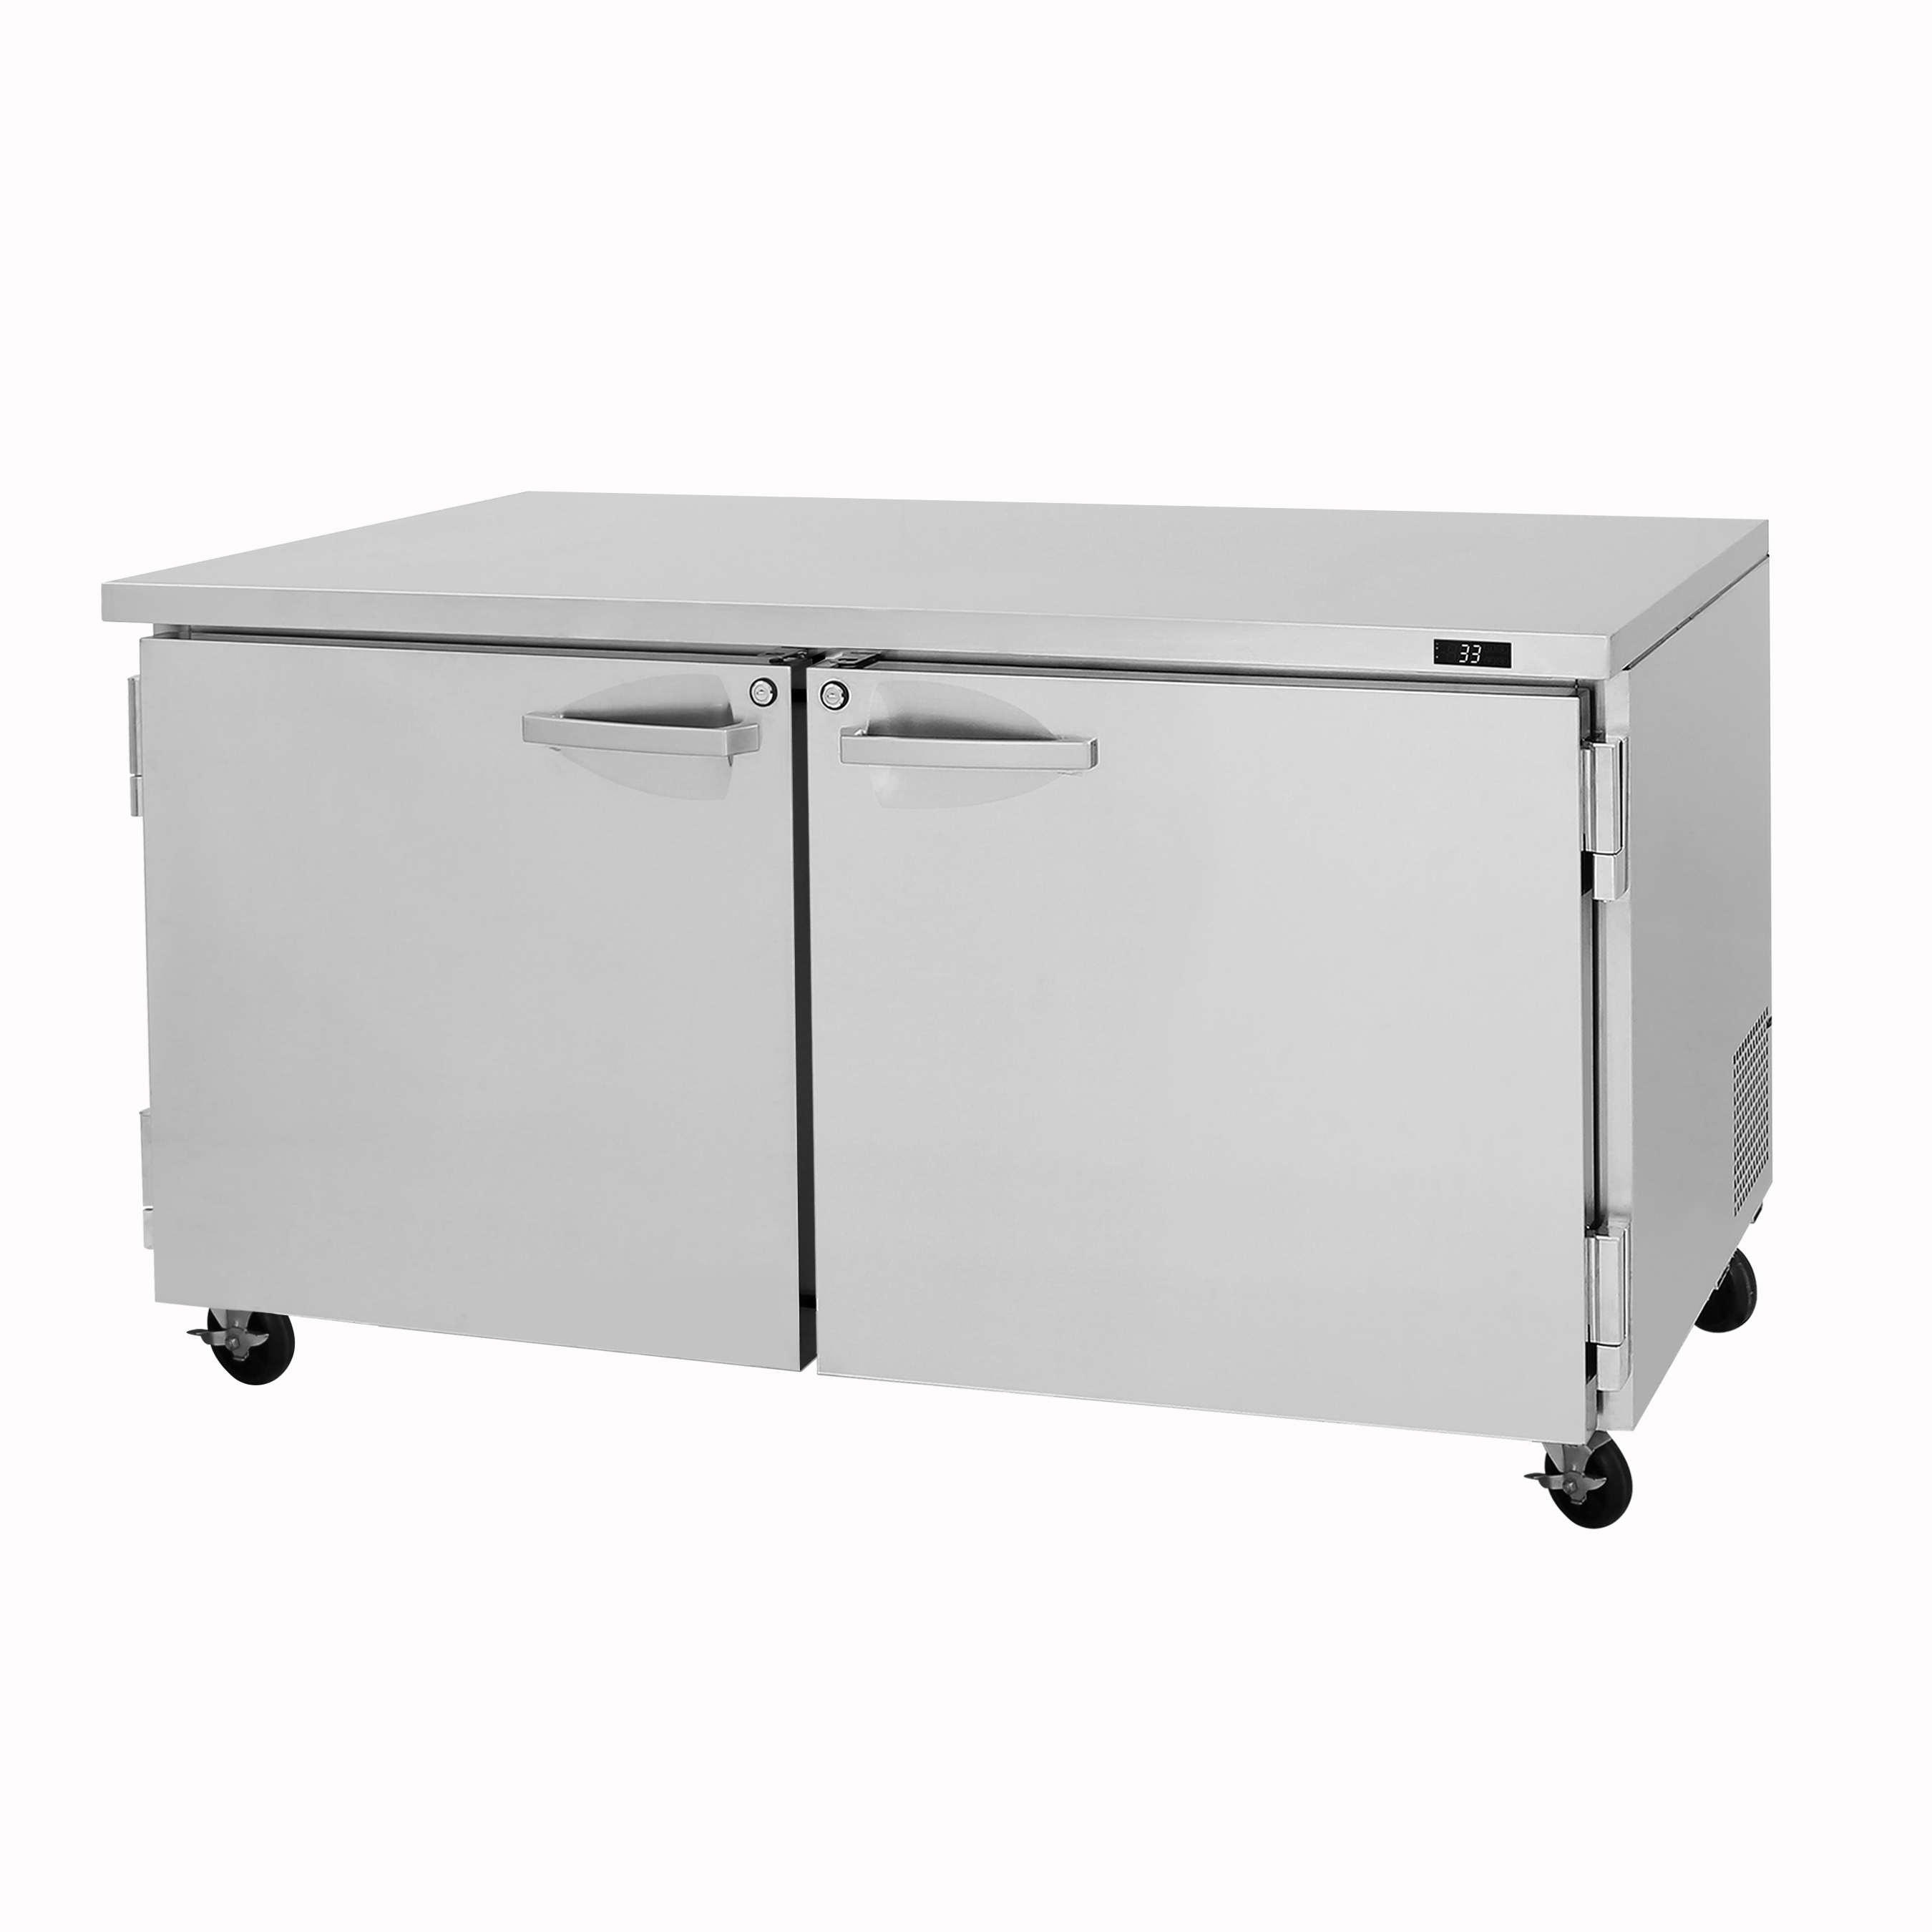 Turbo Air PUF-60-N freezer, undercounter, reach-in